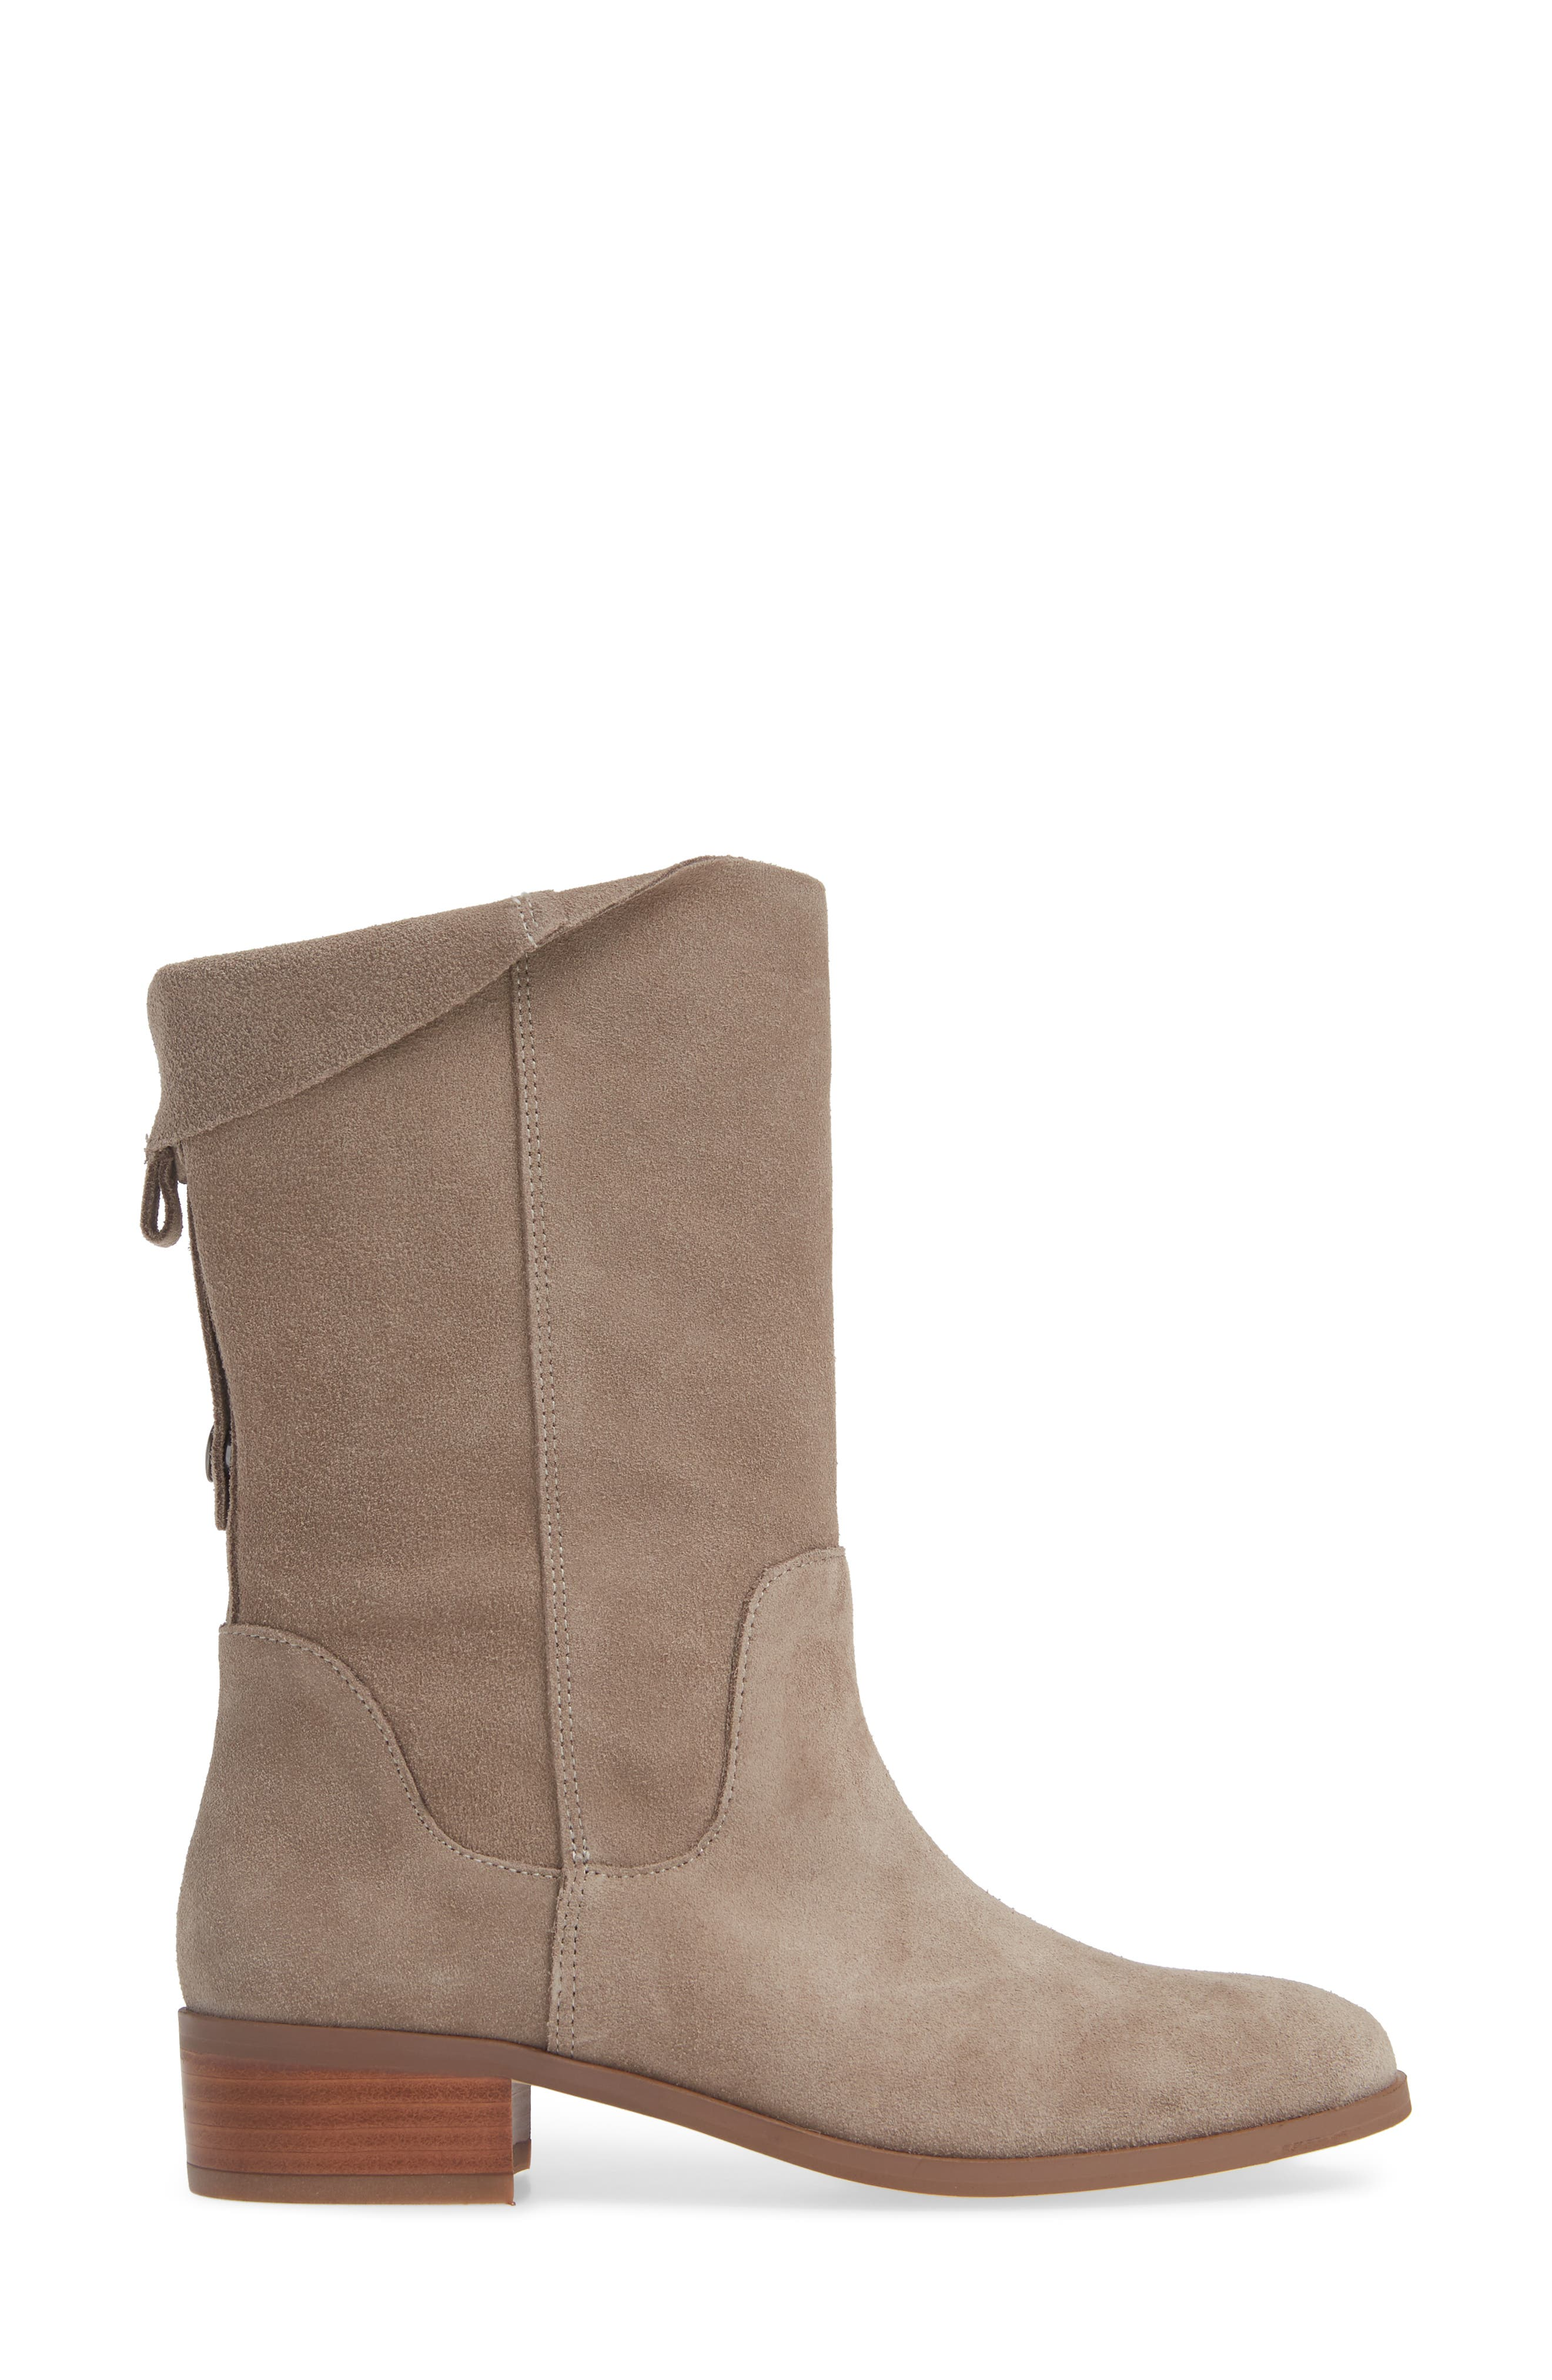 Calanth Bootie,                             Alternate thumbnail 3, color,                             MUSHROOM SUEDE